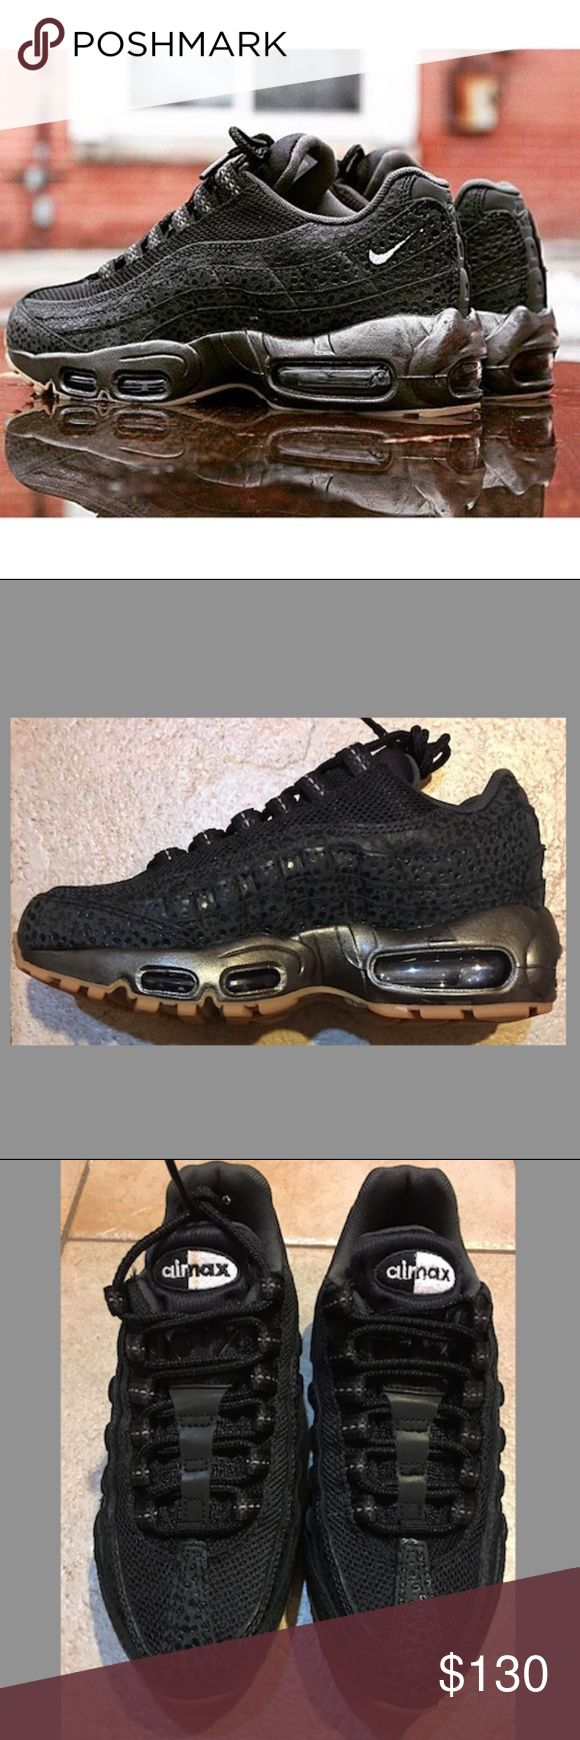 Womens Nike Air Max 95 Premium A staple shoe from a staple collection. The air max 95 is the premier shoe for the Air Max Line...The black/anthracite  upper combined with a gum bottom is a sure hit.  Brand New in Box 100% Authentic shoe is in excellent condition New/Never Worn Box is worn and has some damage to it due to product movement Nike Shoes Athletic Shoes